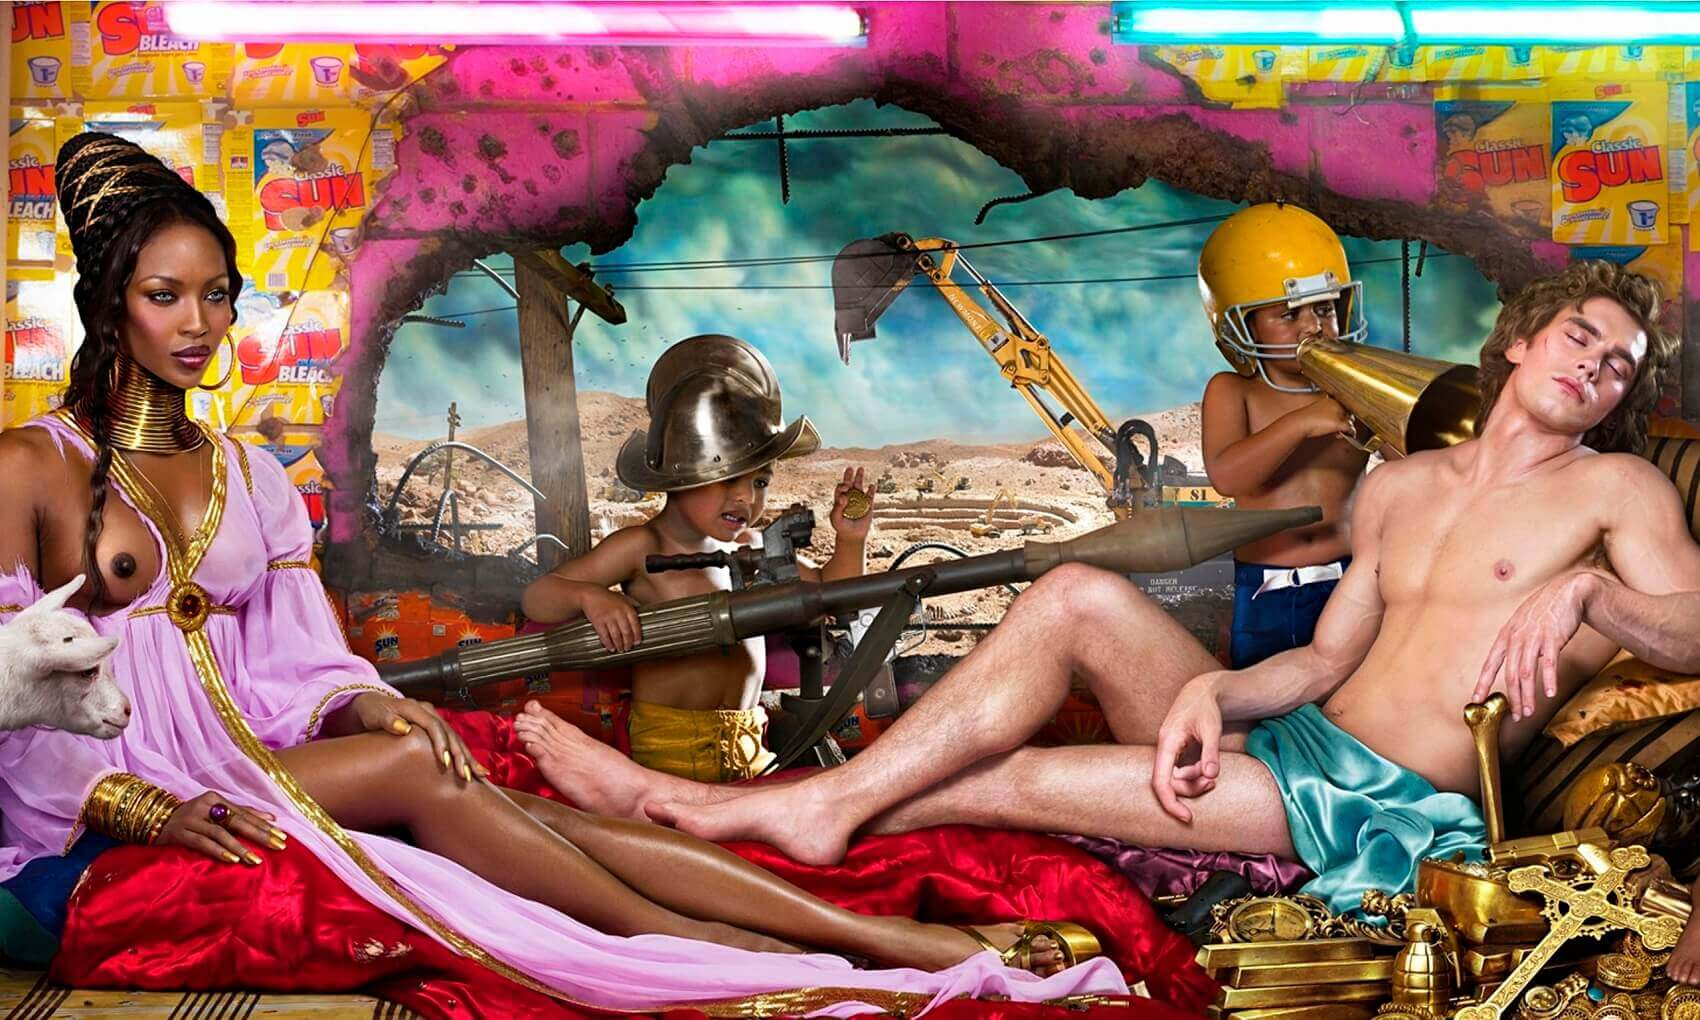 Naomi Campbell by David LaChapelle